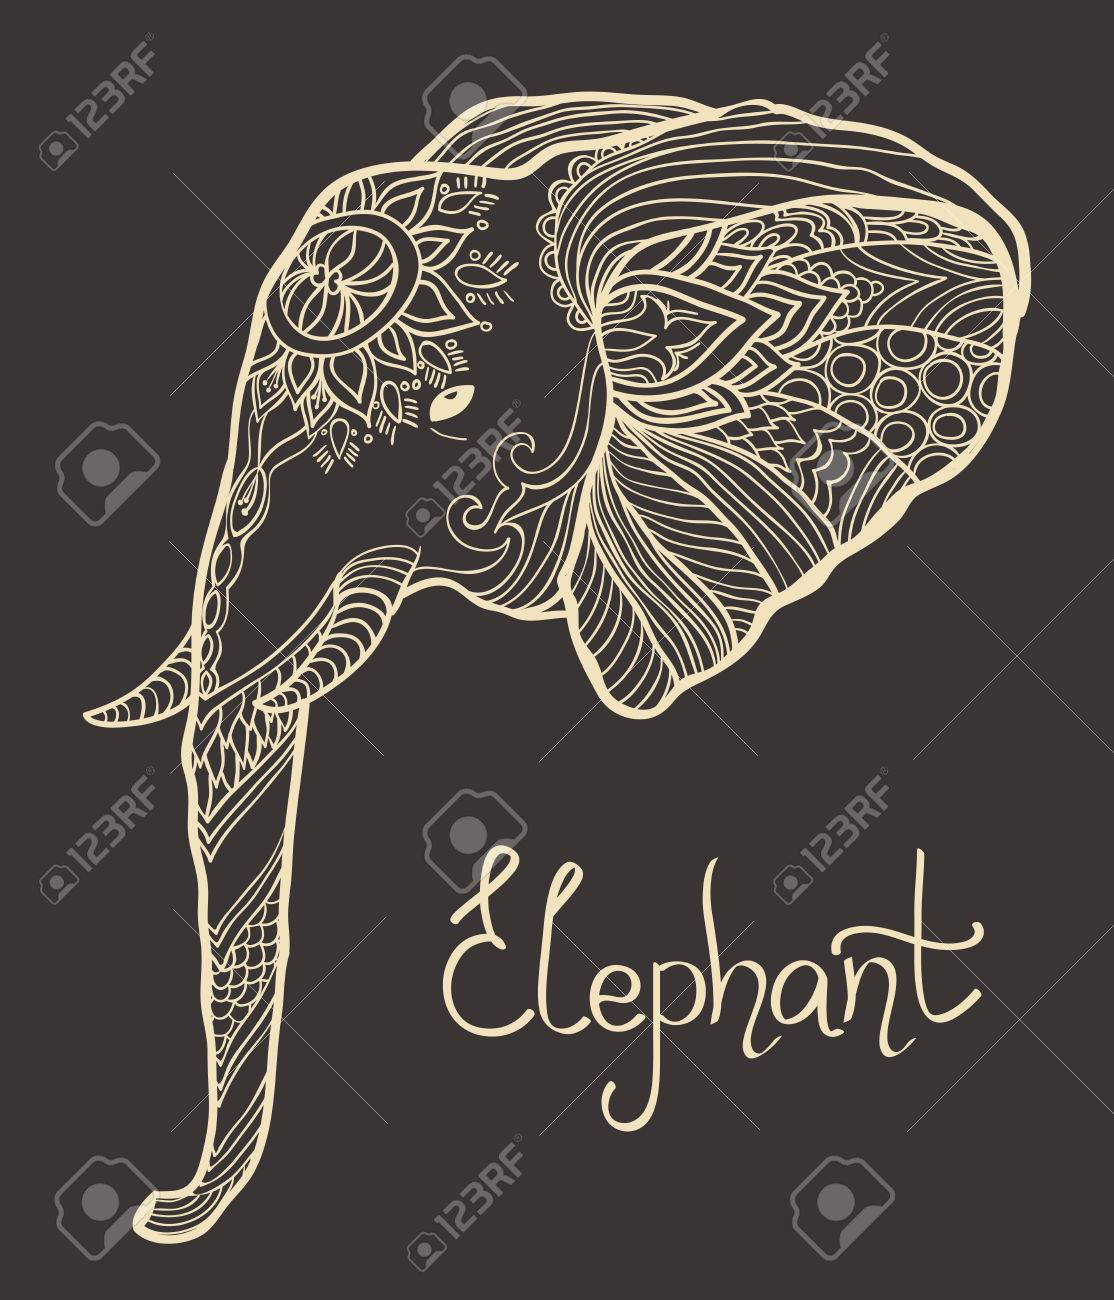 Elephant Head Hand Drawn Tangled Illustration Coloring Page For Adult And Children Stock Vector